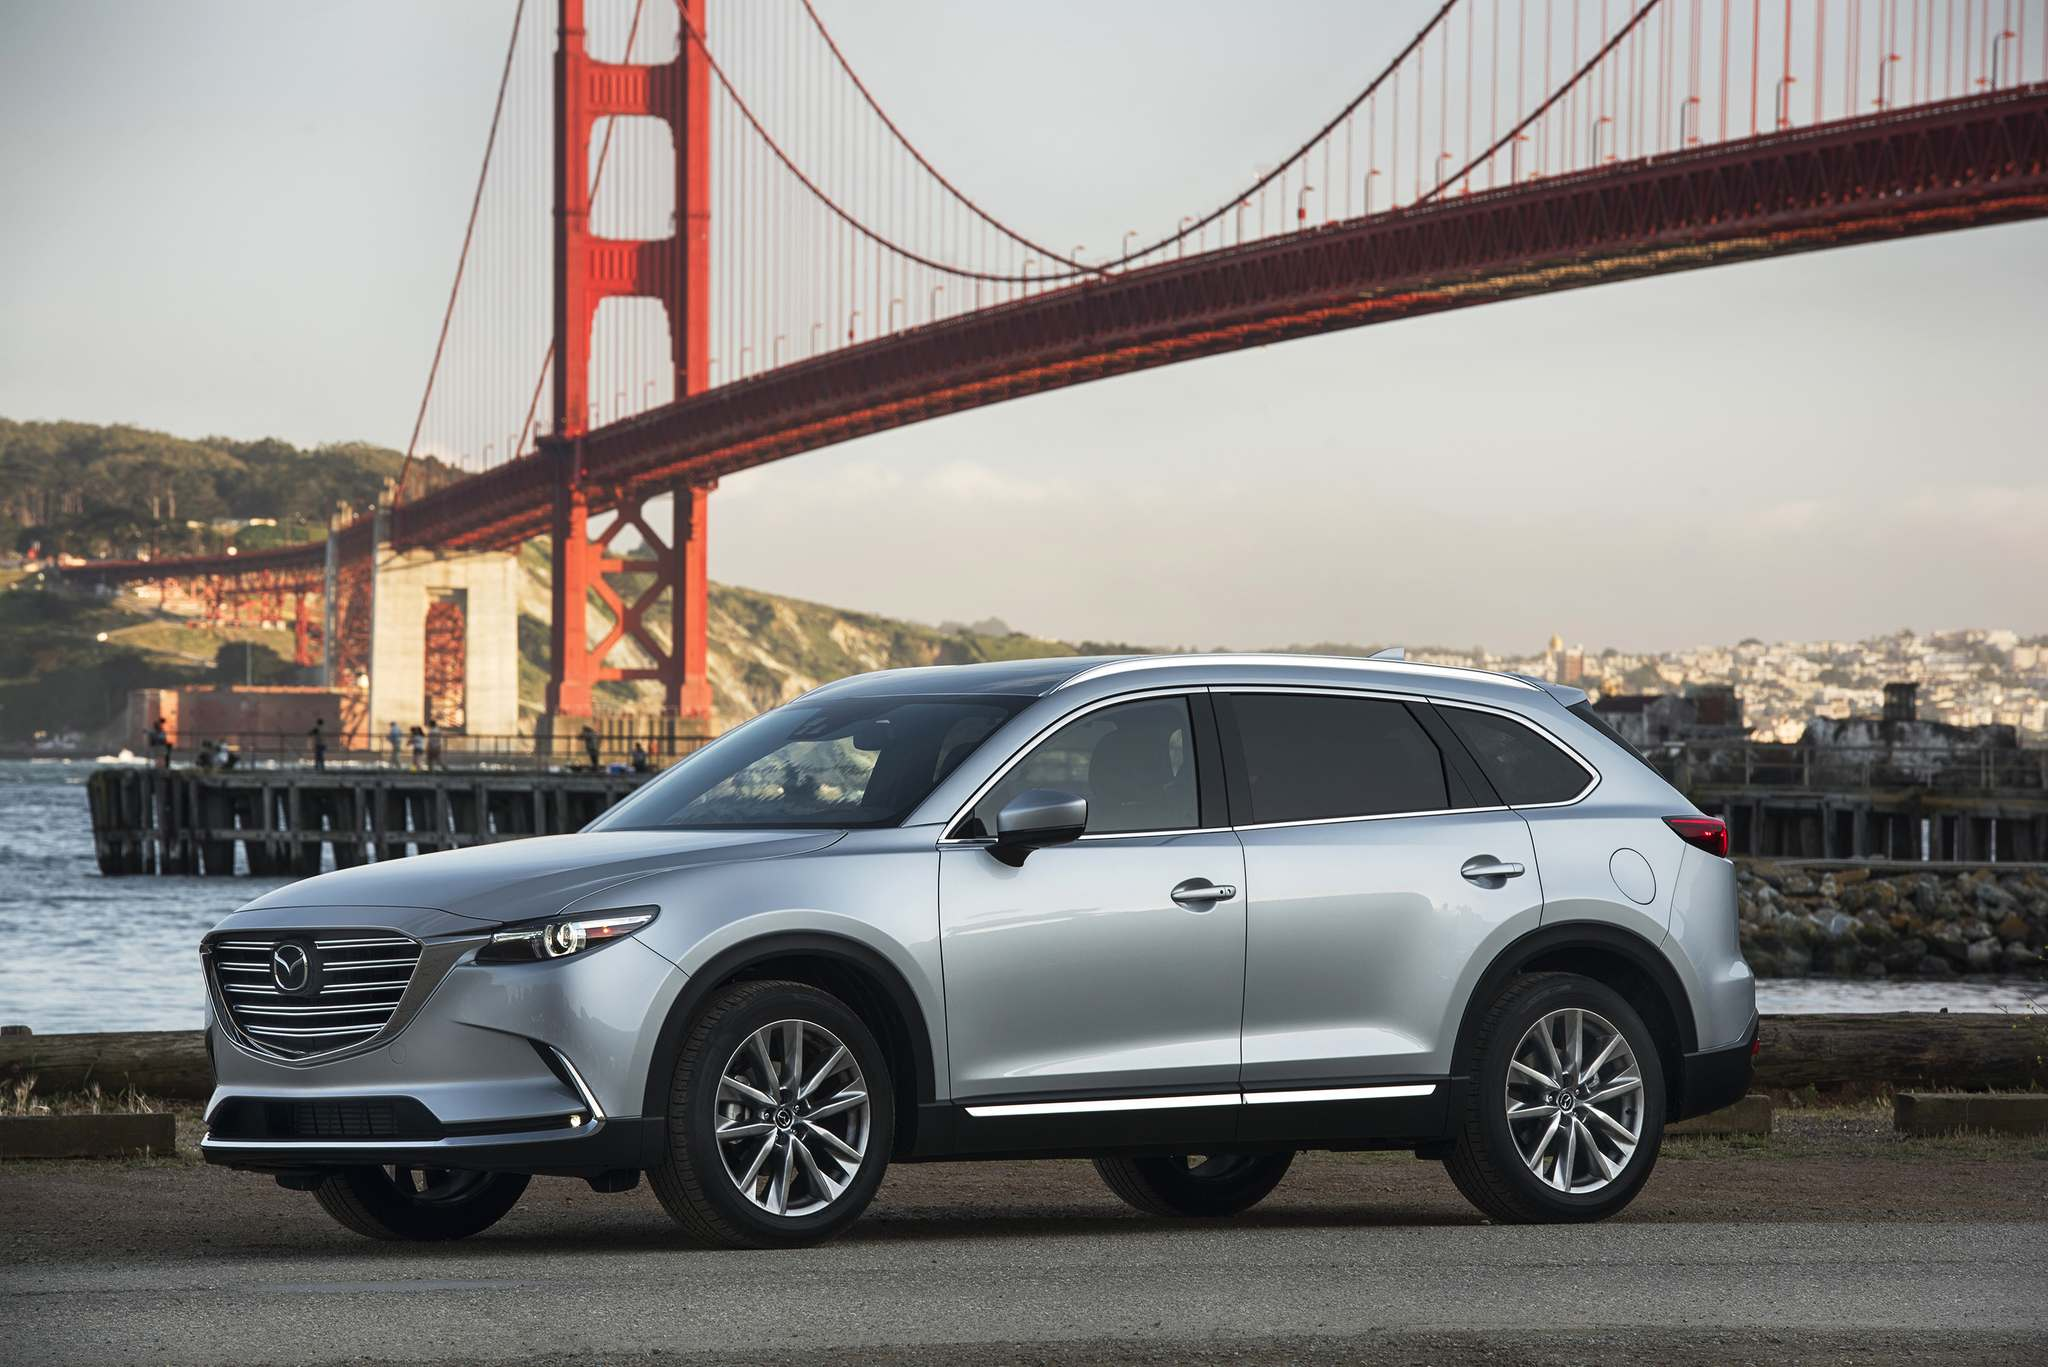 Mazda's CX-9 may not officially have luxury status, but with its posh interior, crisp handling and sexy styling you would never know it.